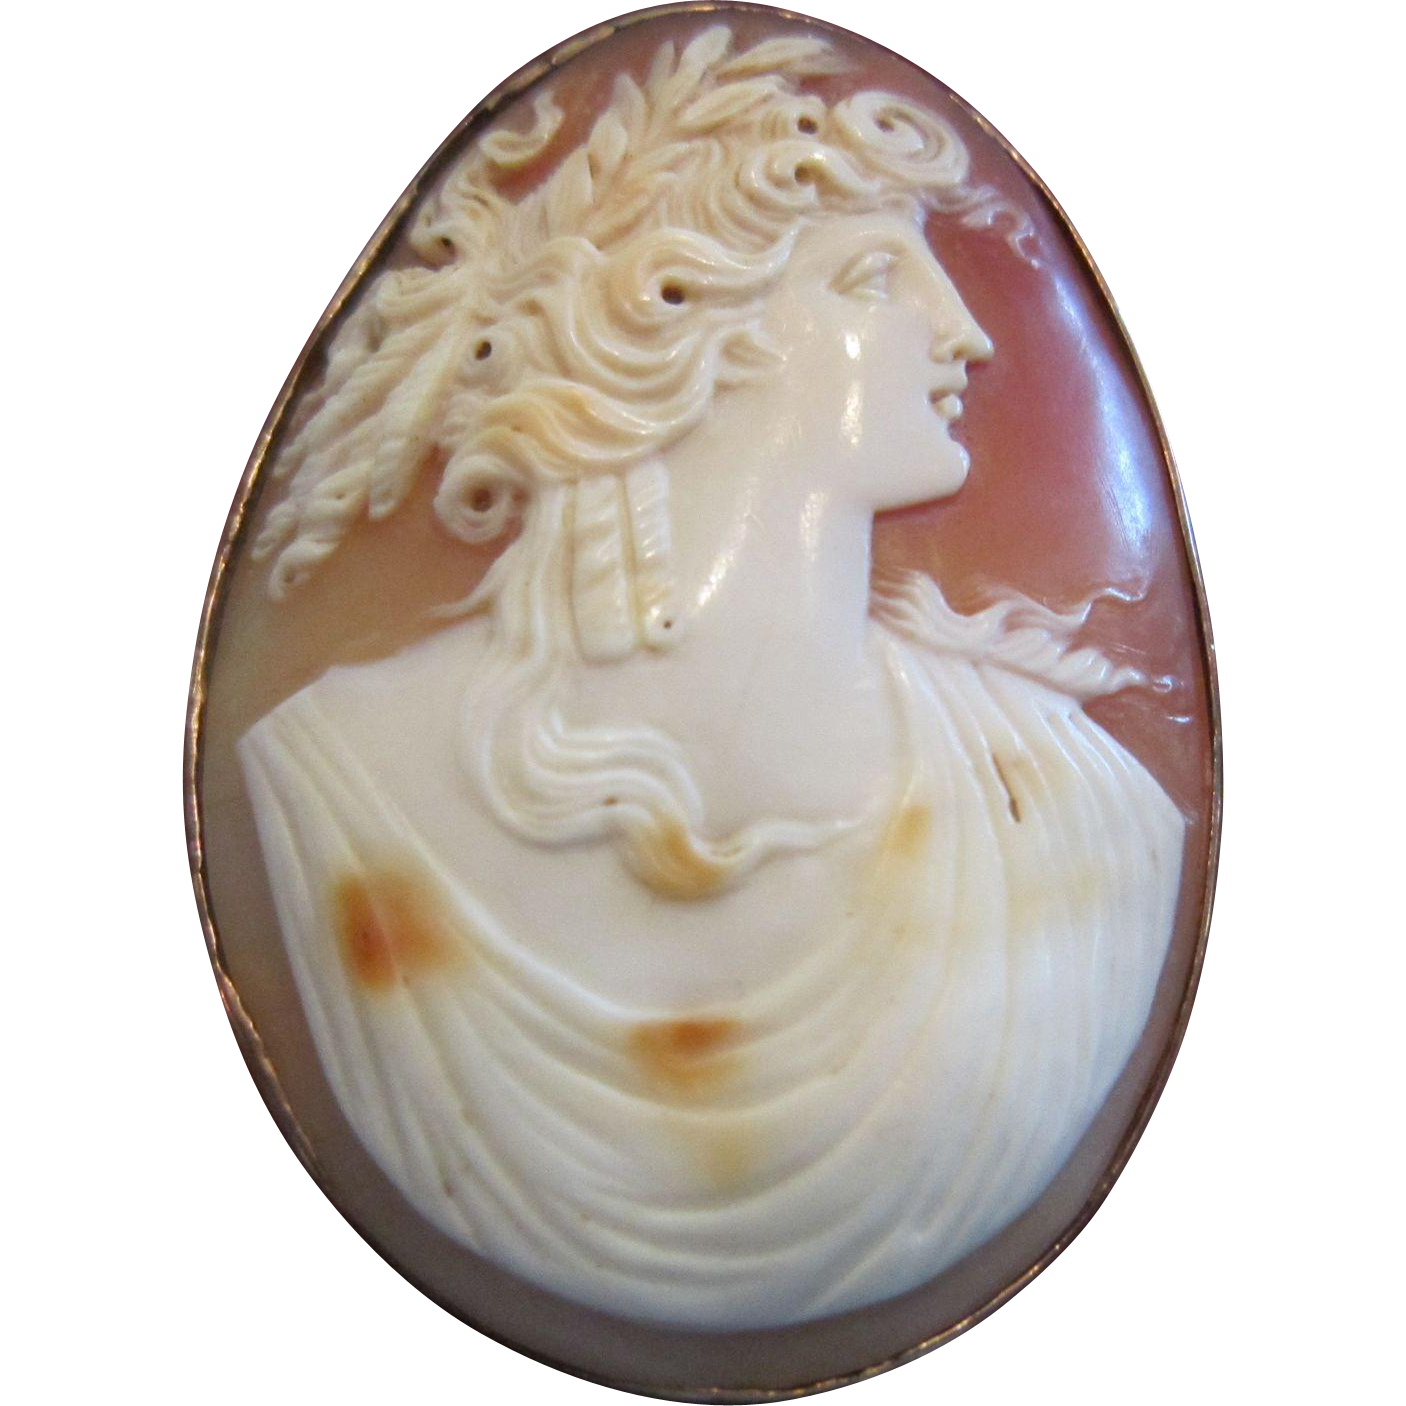 Cameo of Demeter (Ceres) Goddess of Agriculture and Vegetation